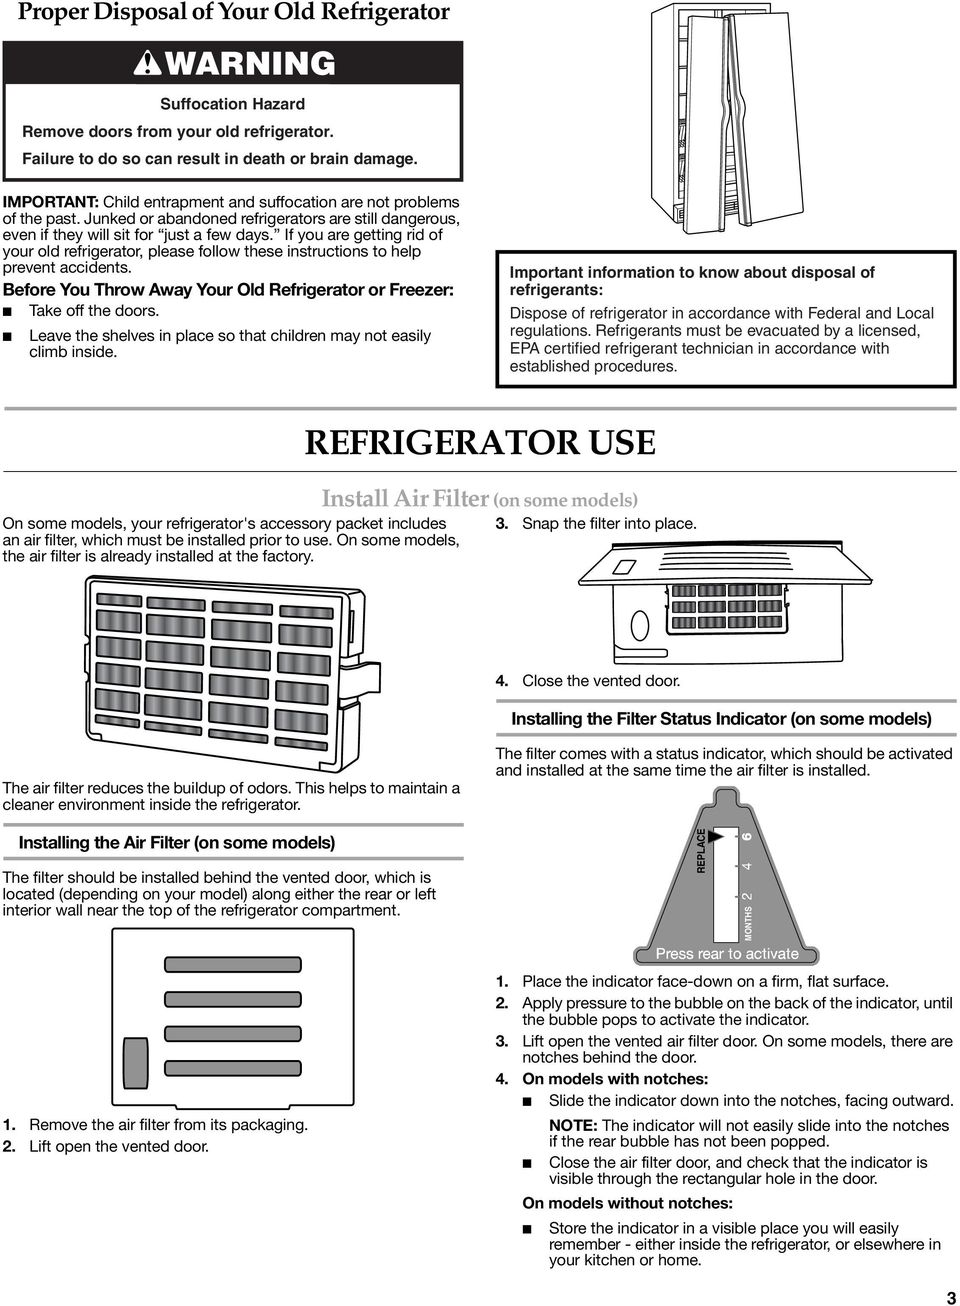 If you are getting rid of your old refrigerator, please follow these instructions to help prevent accidents. Before You Throw Away Your Old Refrigerator or Freezer: Take off the doors.